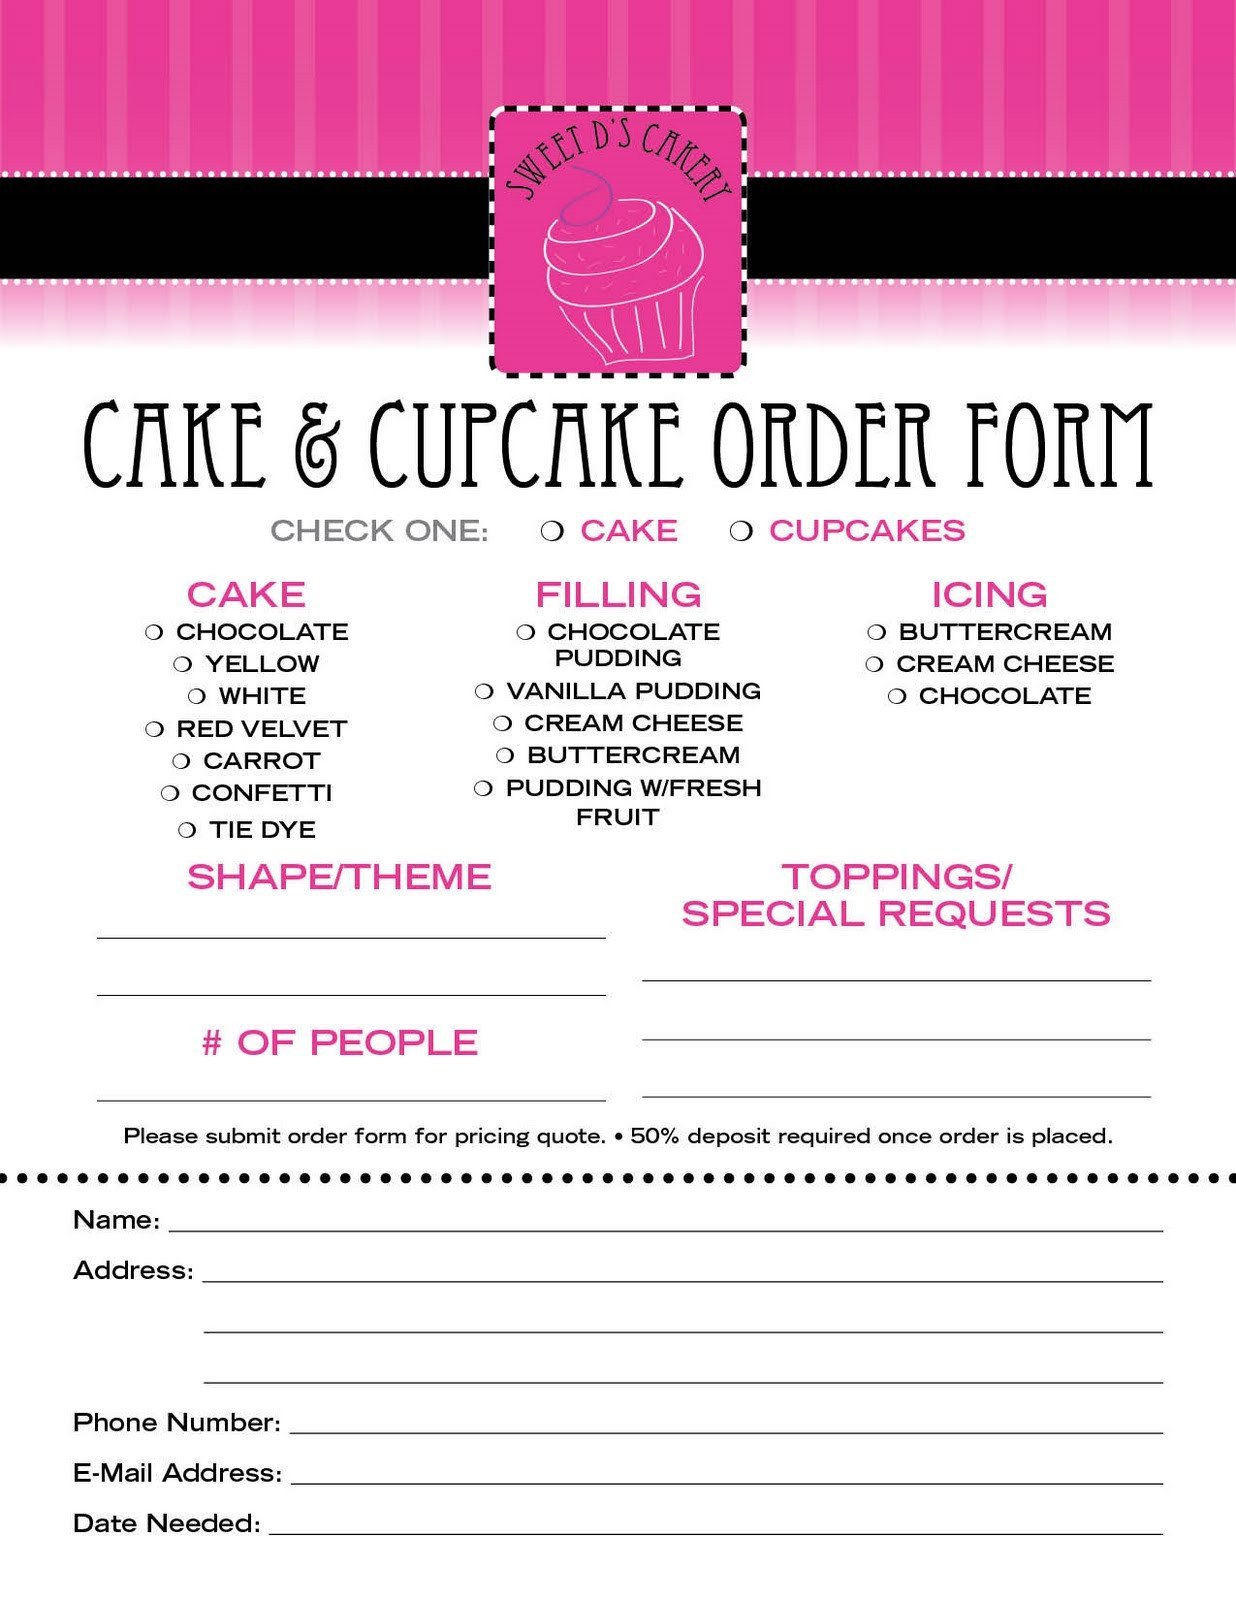 Cake order forms Templates Sweet D S Cakery Download Our order form Here